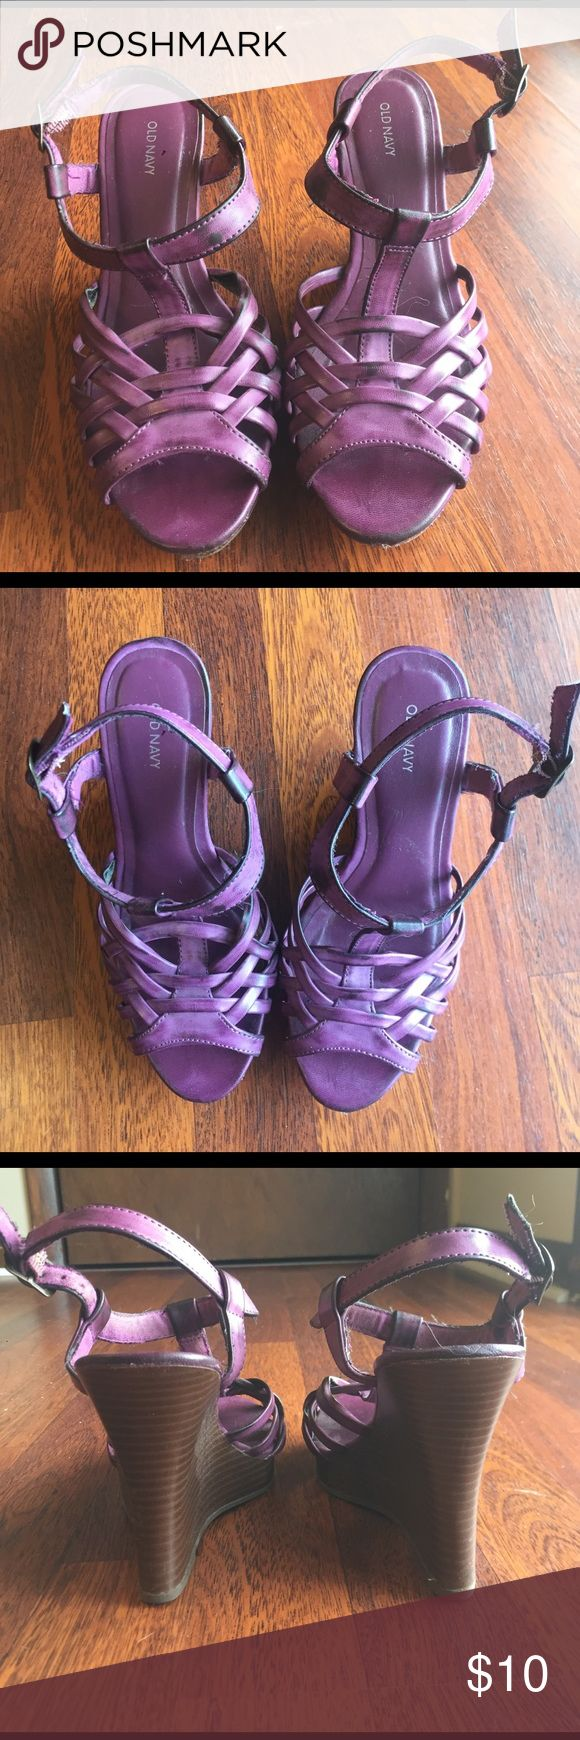 Purple Wedges These adorable purple wedges are a perfect pop of color to any outfit. They are in almost perfect condition despite a little fraying on the strap but they have only been worn about 5 times. Old Navy Shoes Wedges